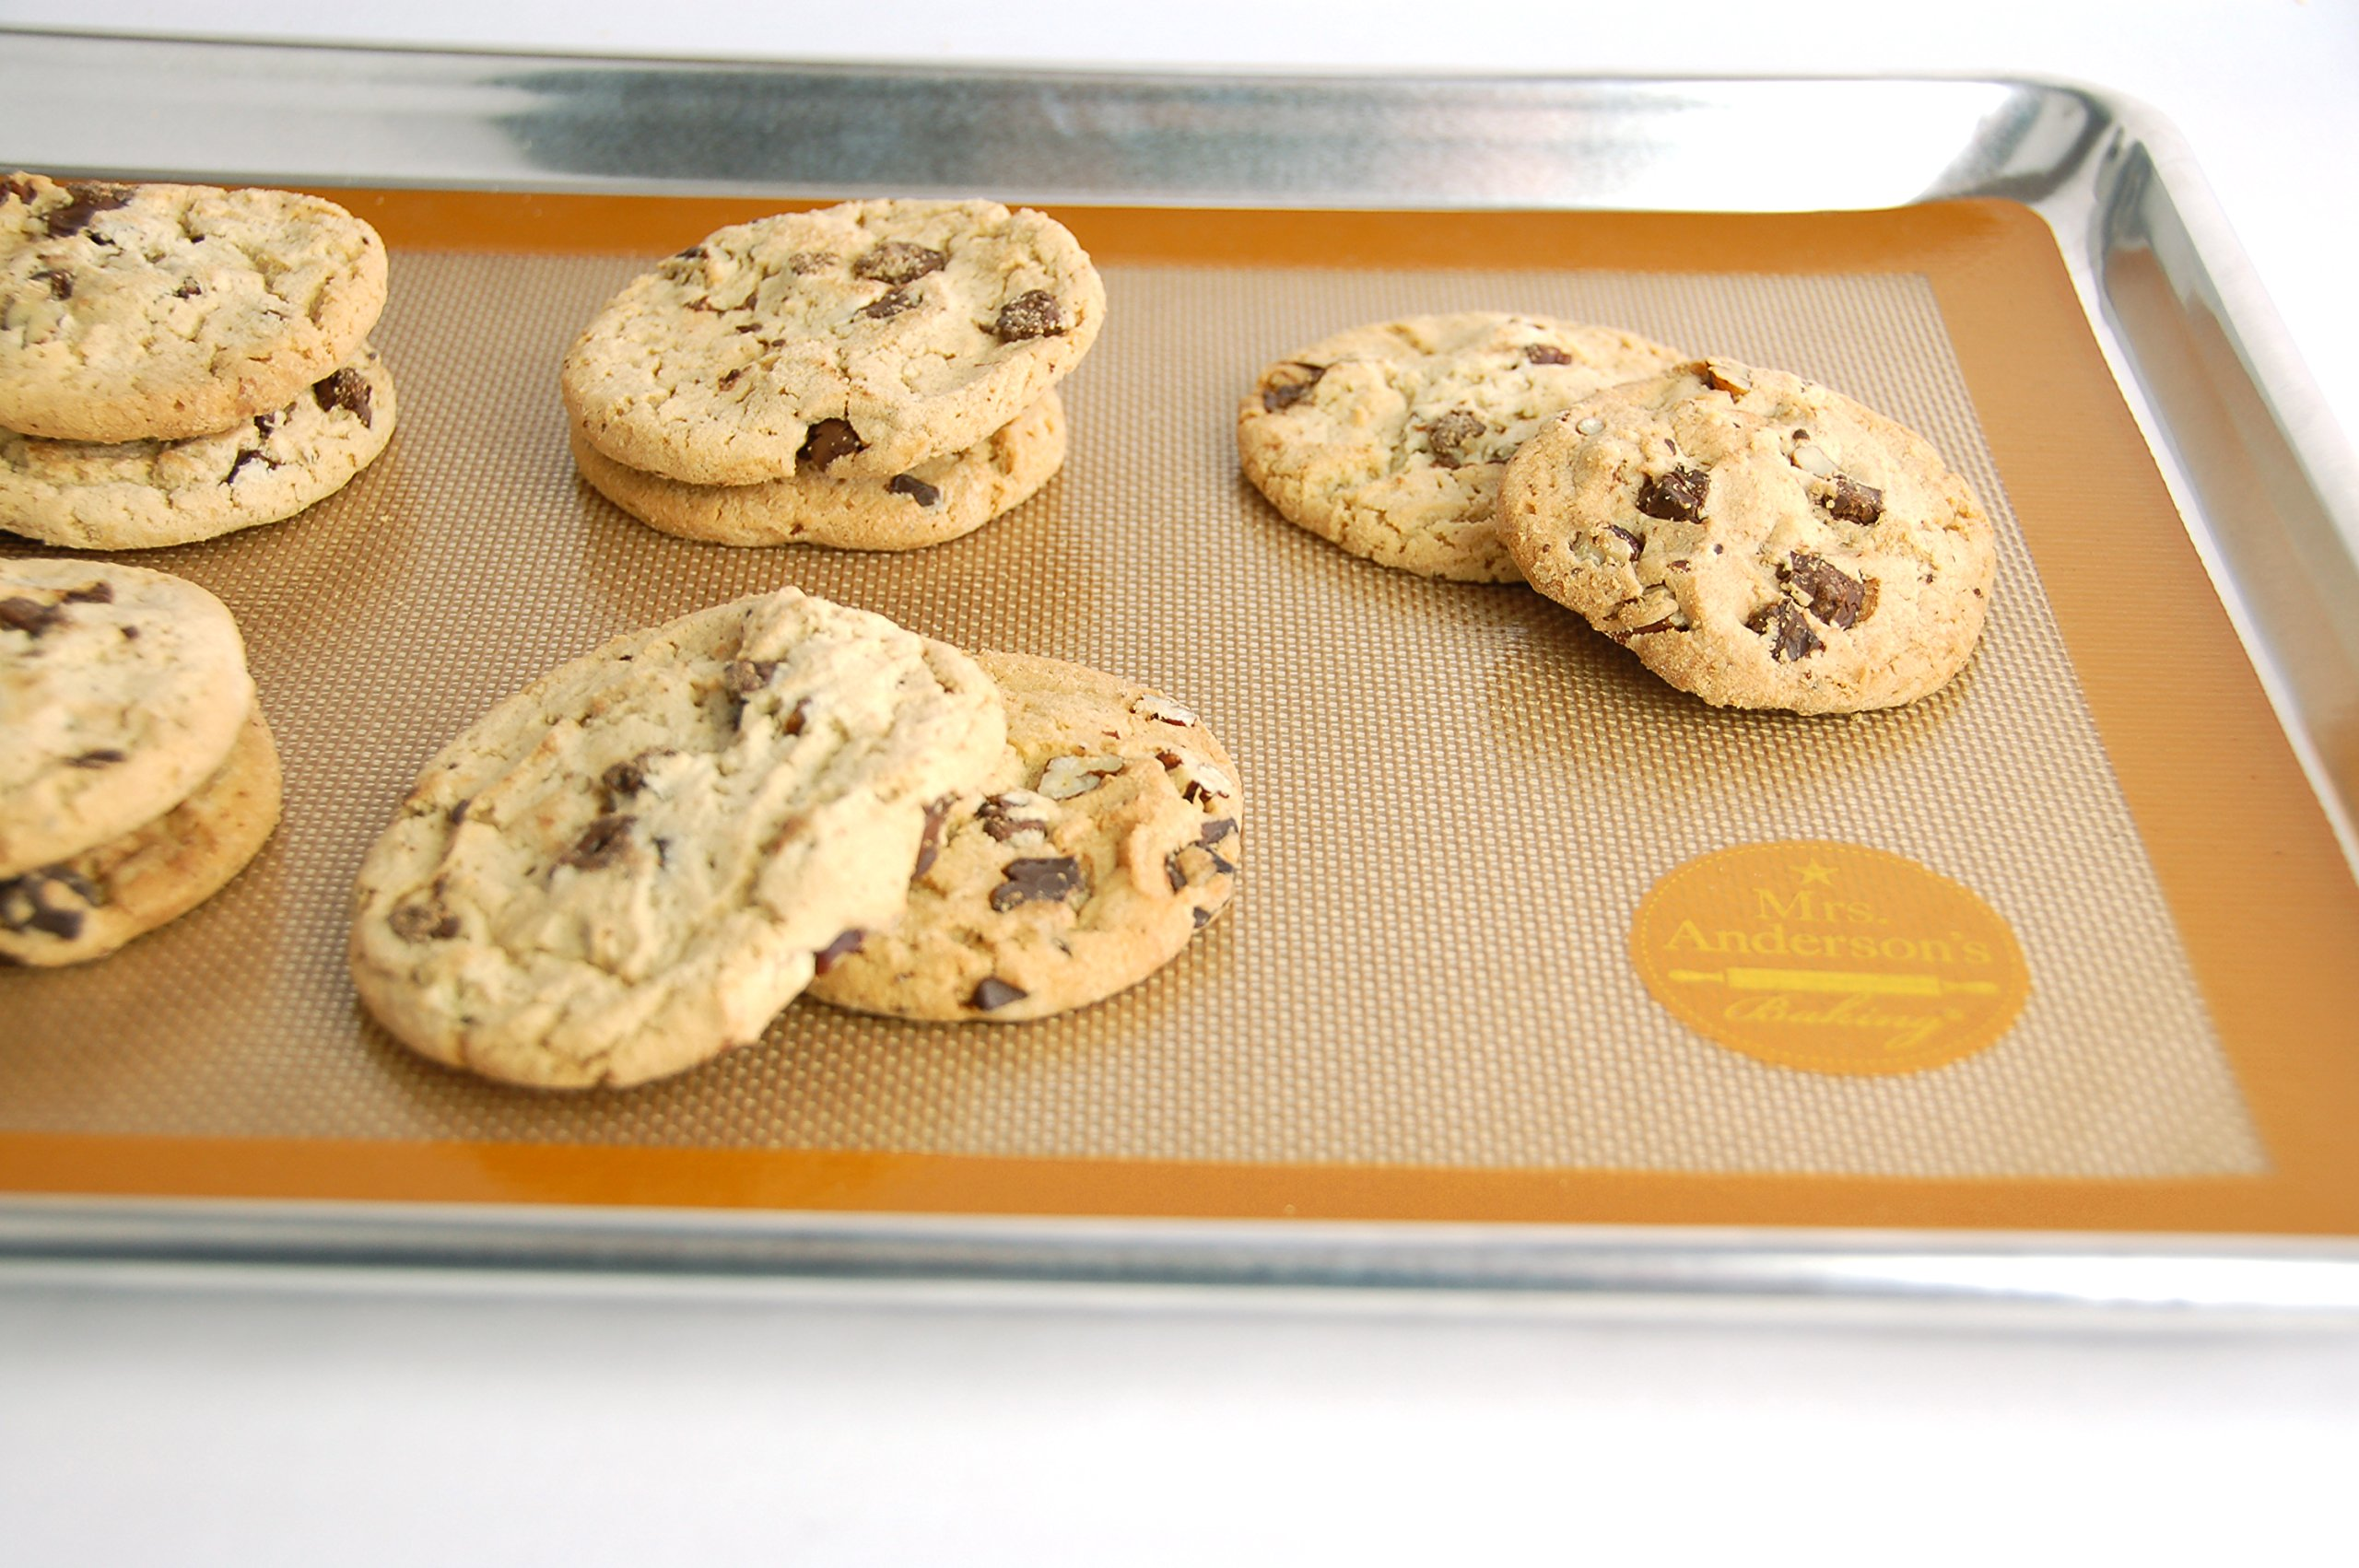 Mrs. Anderson's Baking Non-Stick Silicone Half-Size Baking Mat, 11.625-Inch x 16.5-Inch, Set of 2 by Mrs. Anderson's Baking (Image #4)